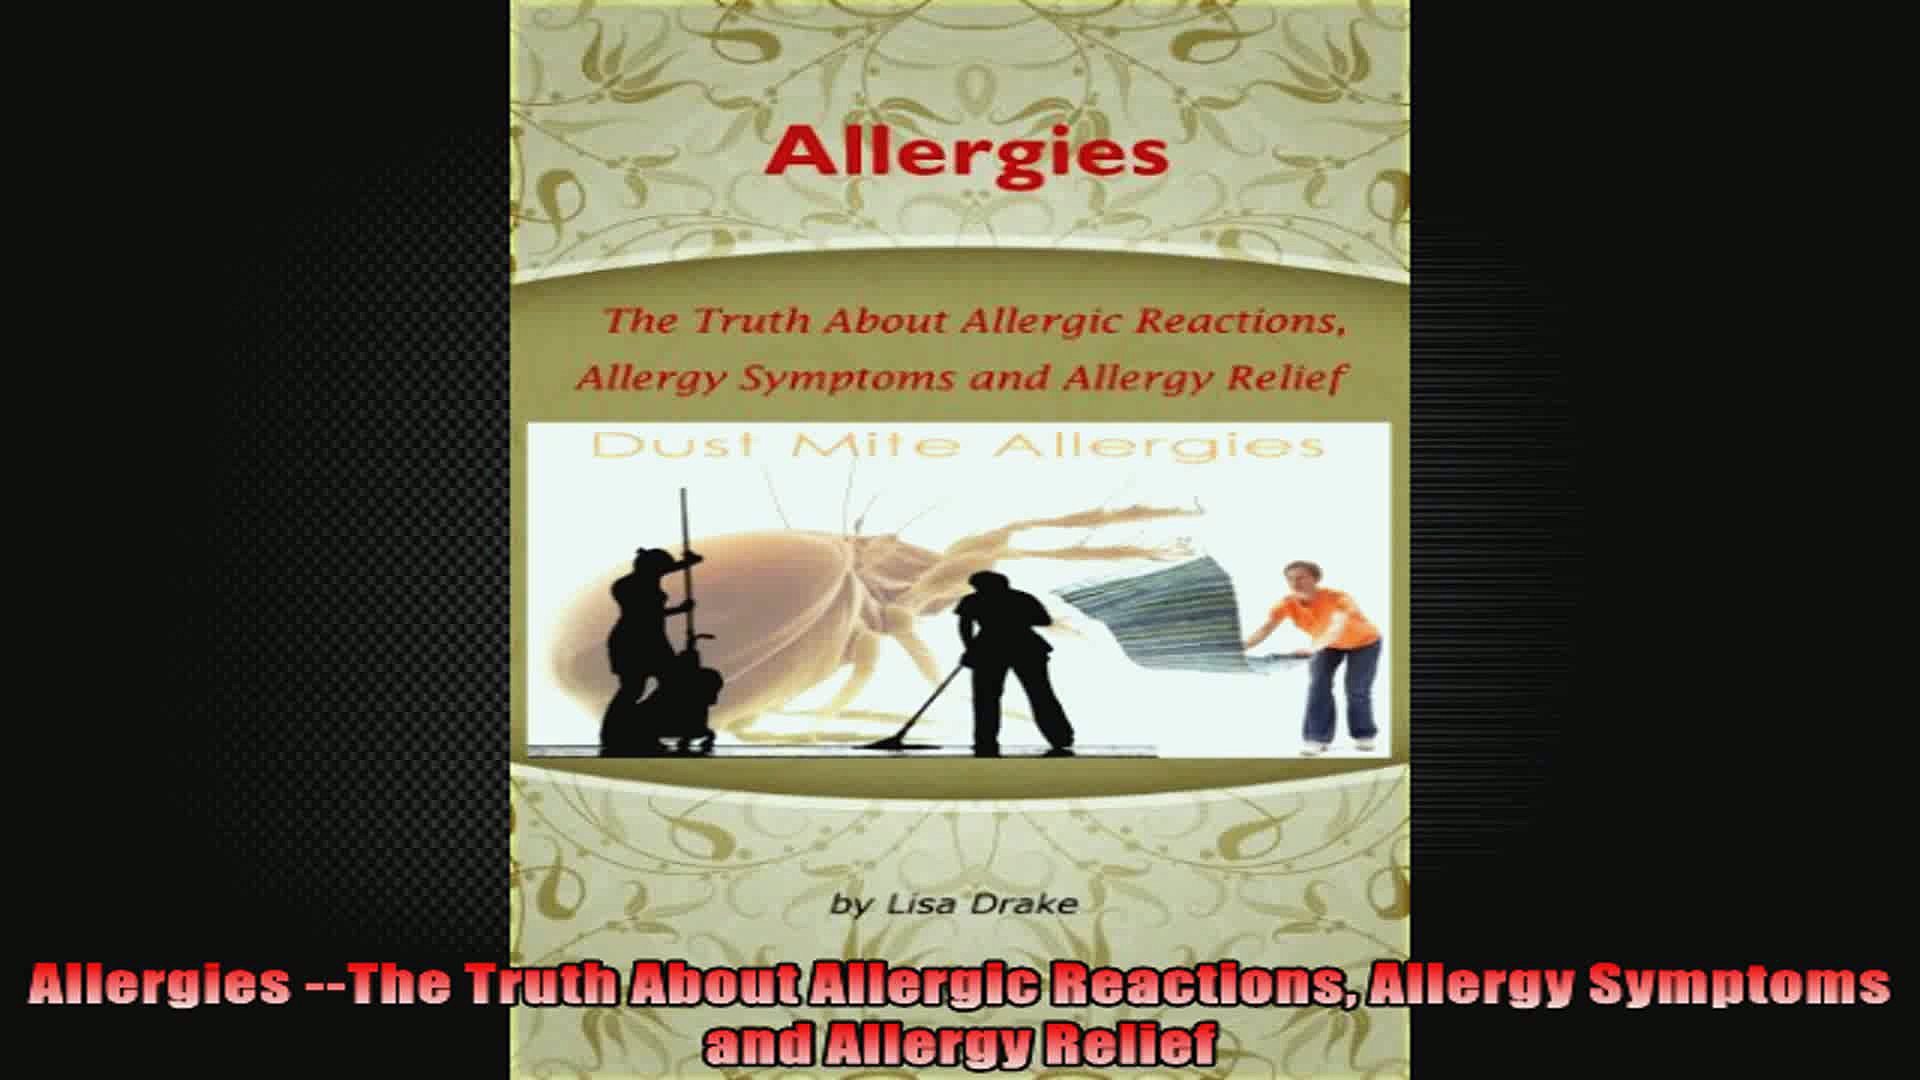 Allergies The Truth About Allergic Reactions Allergy Symptoms and Allergy Relief